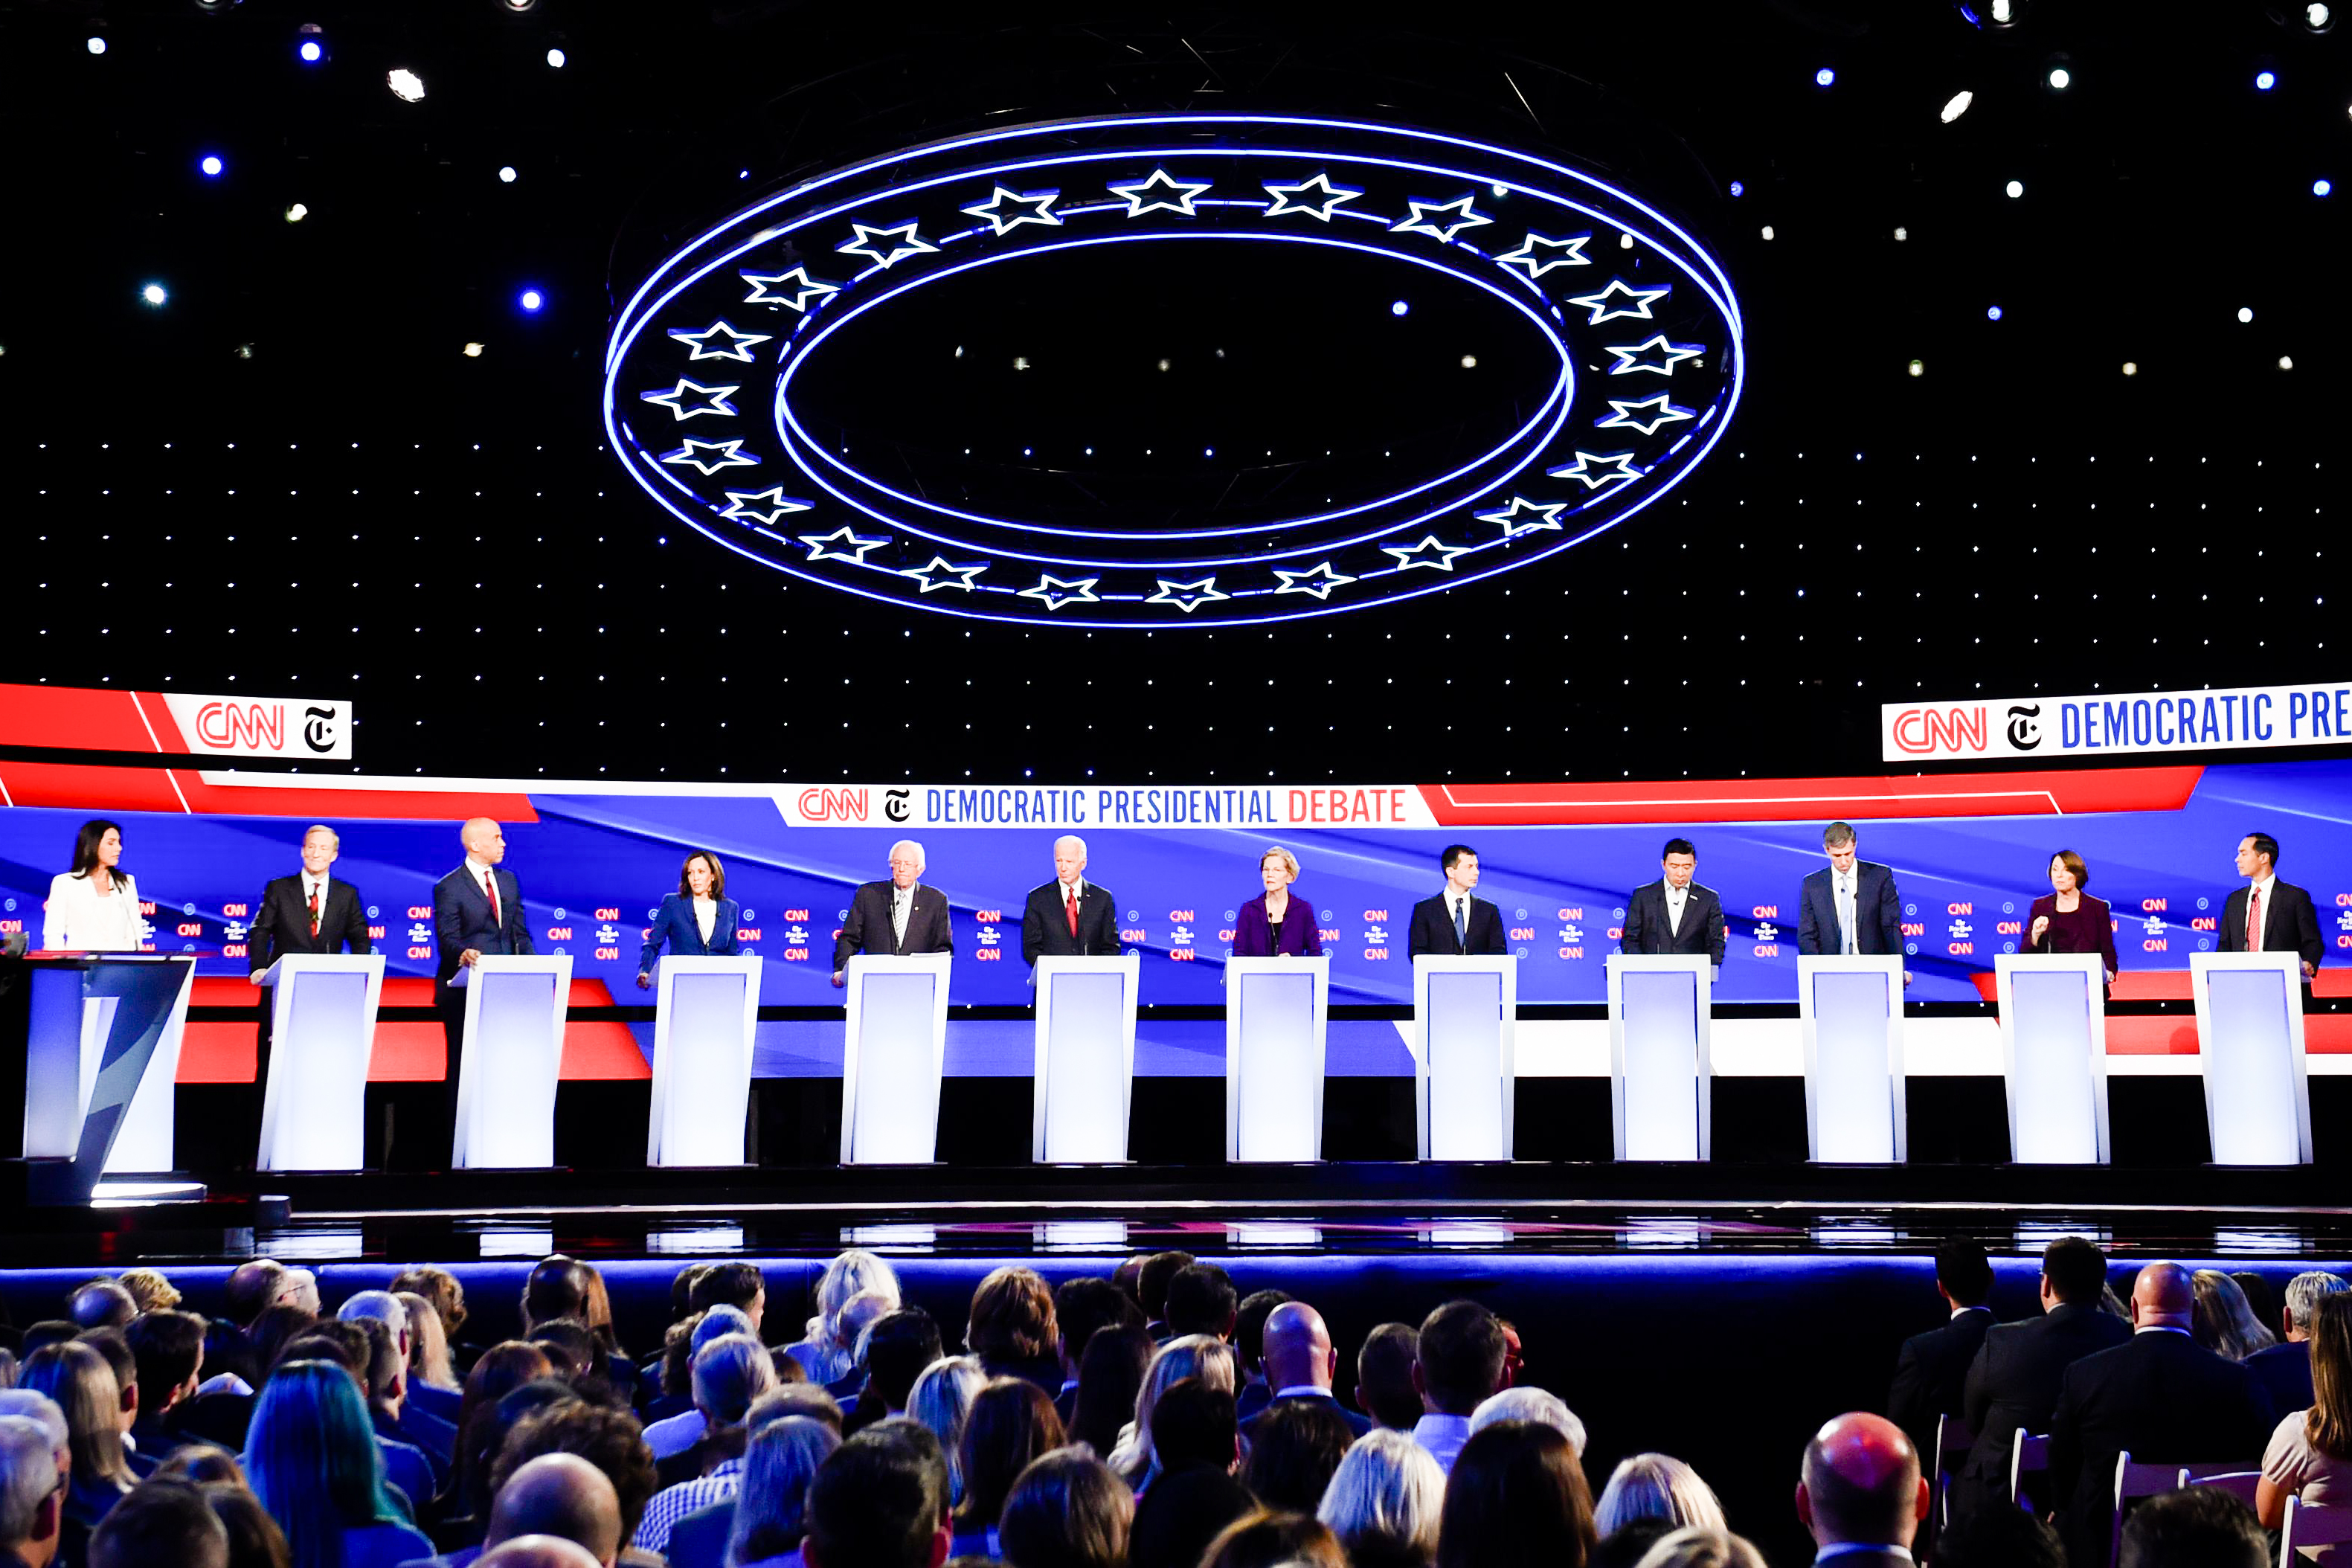 Twelve democratic presidential hopefuls on stage during the fourth Democratic primary debate of the 2020 presidential campaign season.